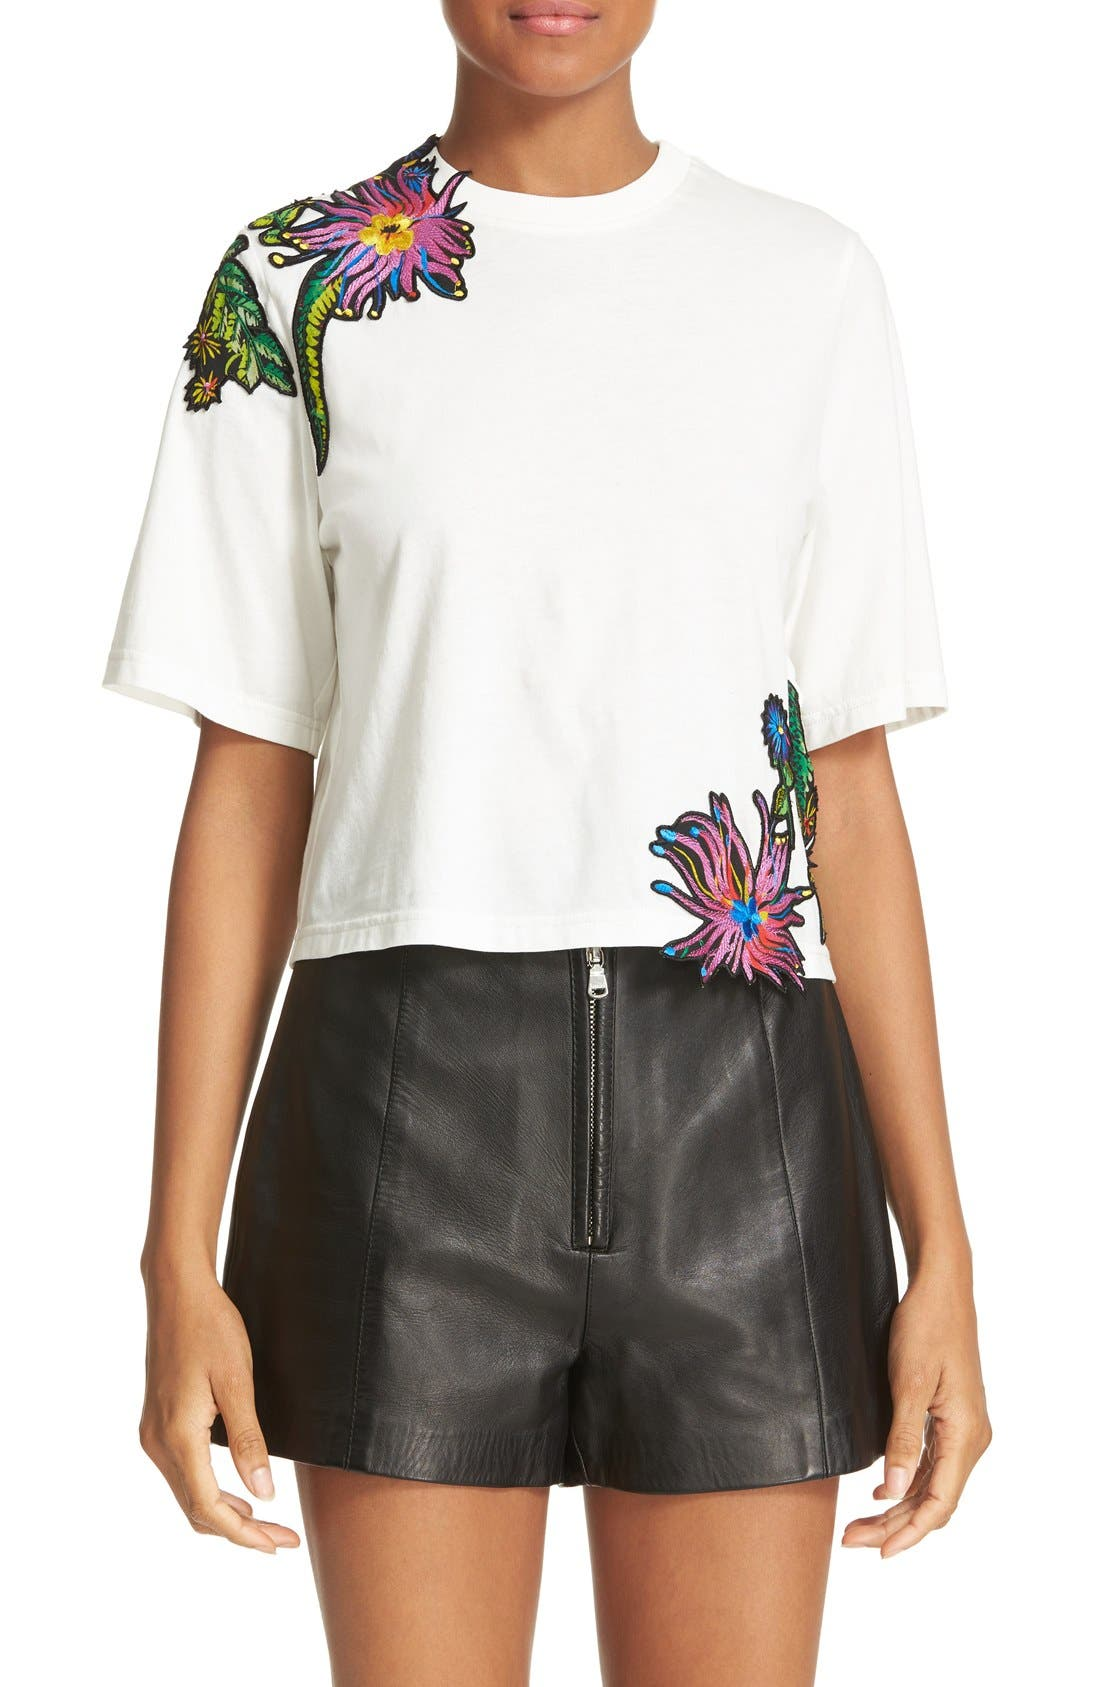 Alternate Image 1 Selected - 3.1 Phillip Lim Embroidered Floral Patch Tee